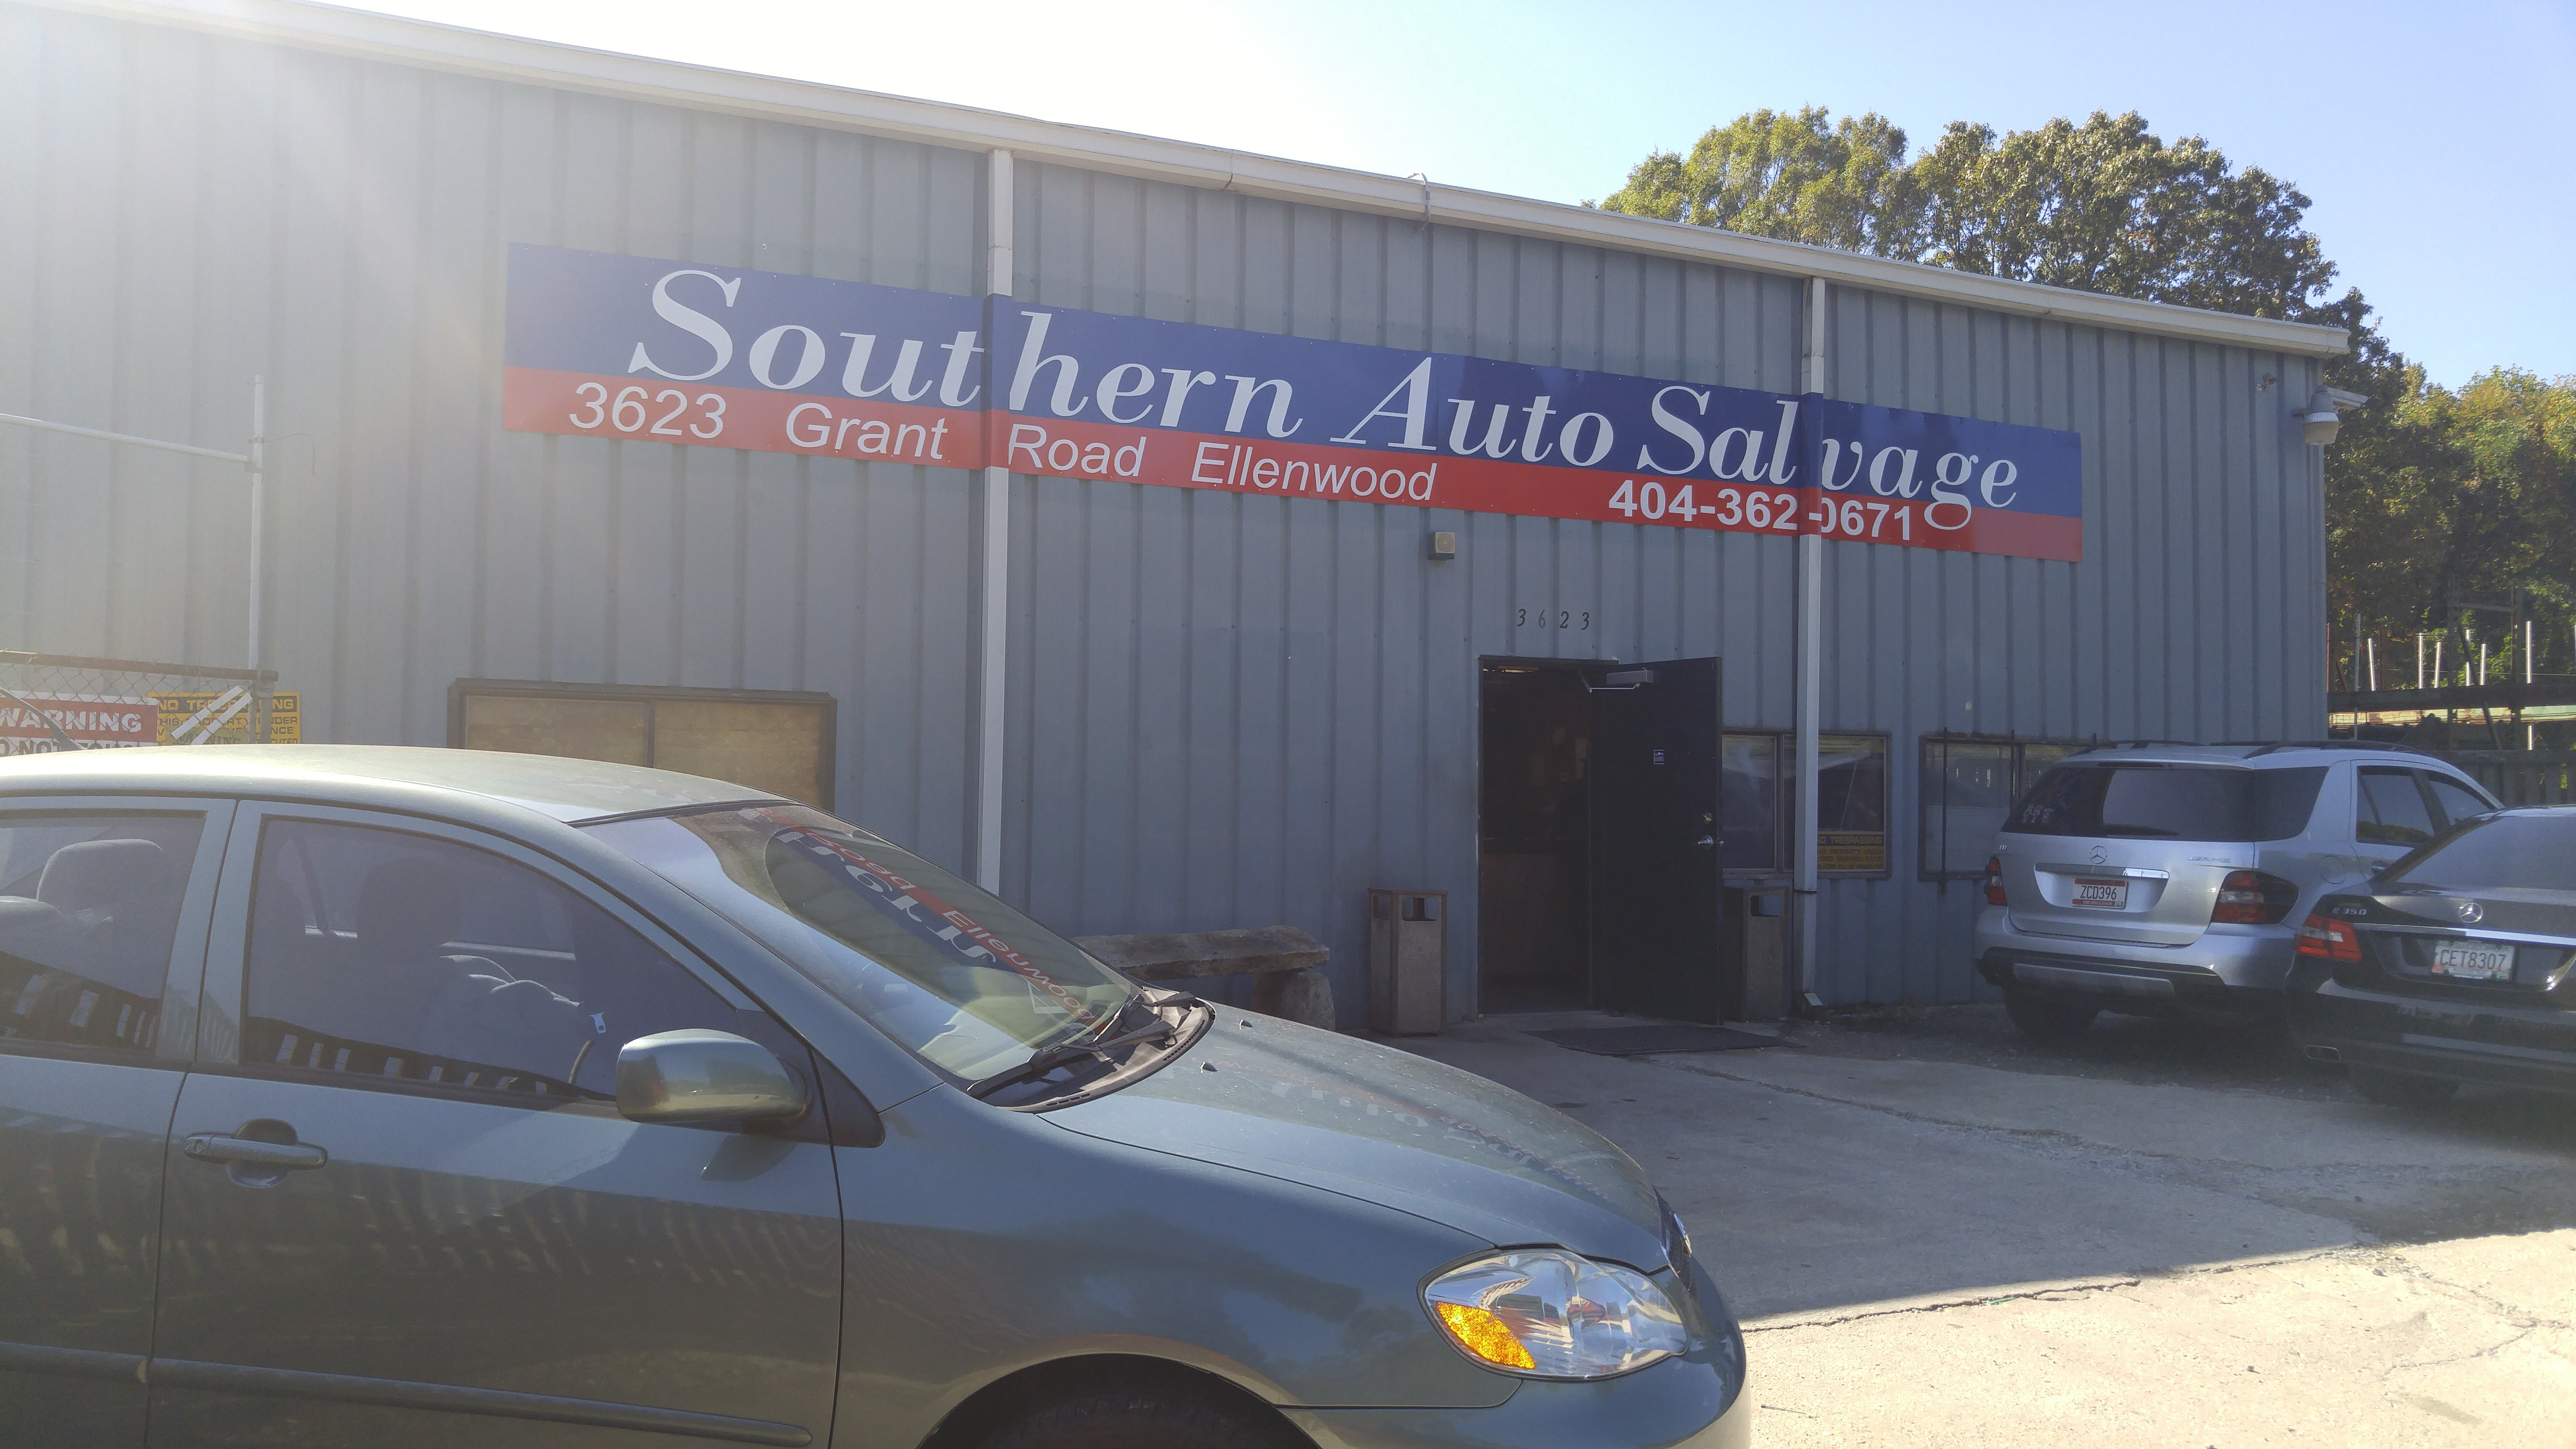 Southern Auto Salvage image 11